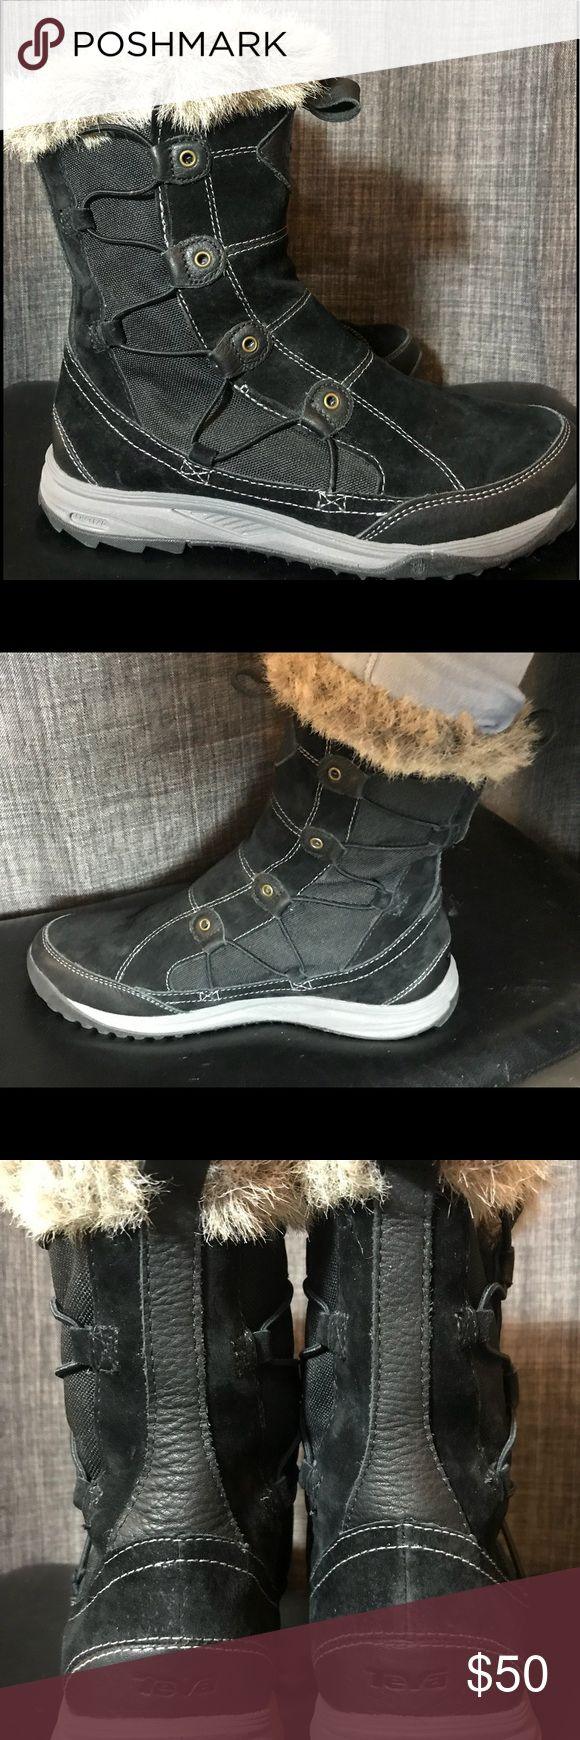 TEVA THINSULATE BOOTS❄️☃️EUC TEVA Little Cloud Boots with grippy tread, leather and faux fur. Insulated with THINSULATE and actually feel like the clouds they're named after. Very warm and lightweight! Teva Shoes Winter & Rain Boots